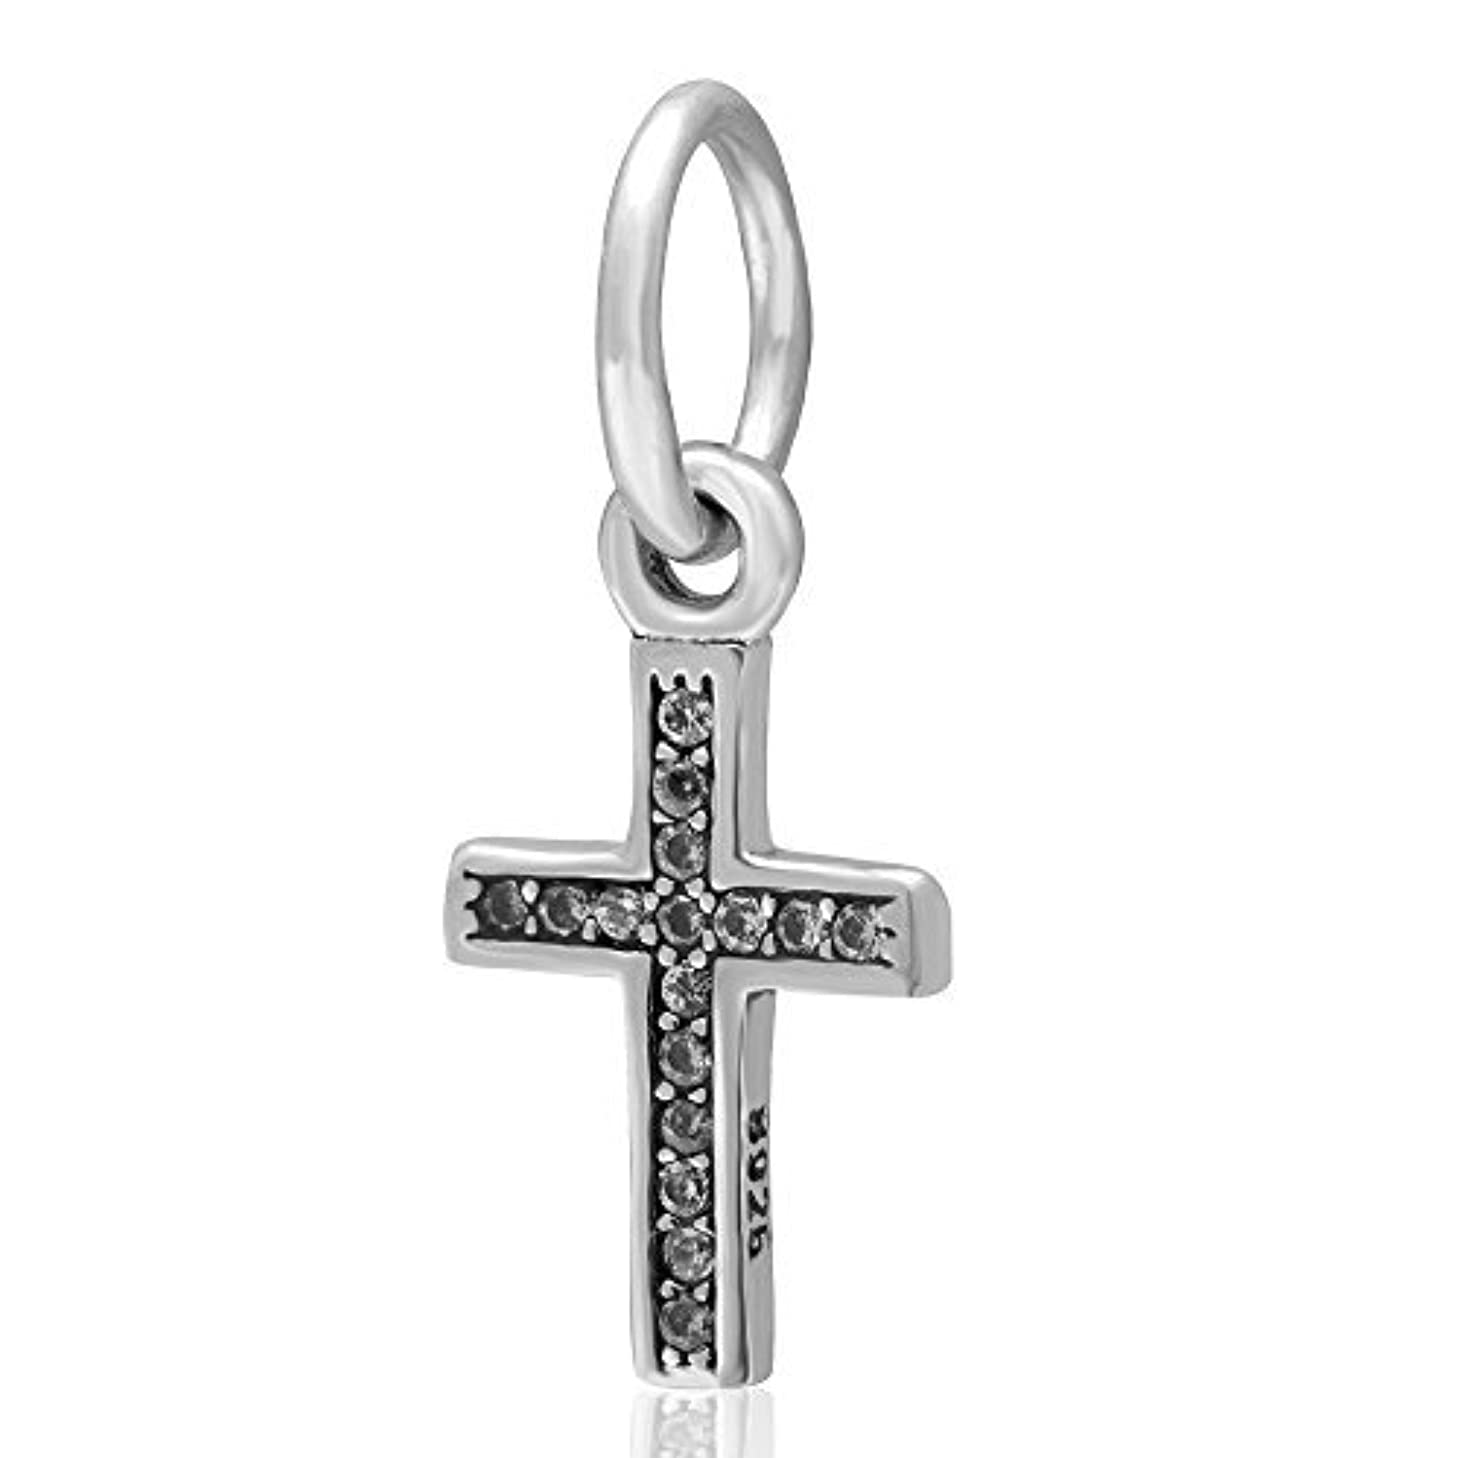 Symbol of Faith Charm - 925 Sterling Silver with Clear Zircon Stone Keep Faith Pendant Charm Bible Beads